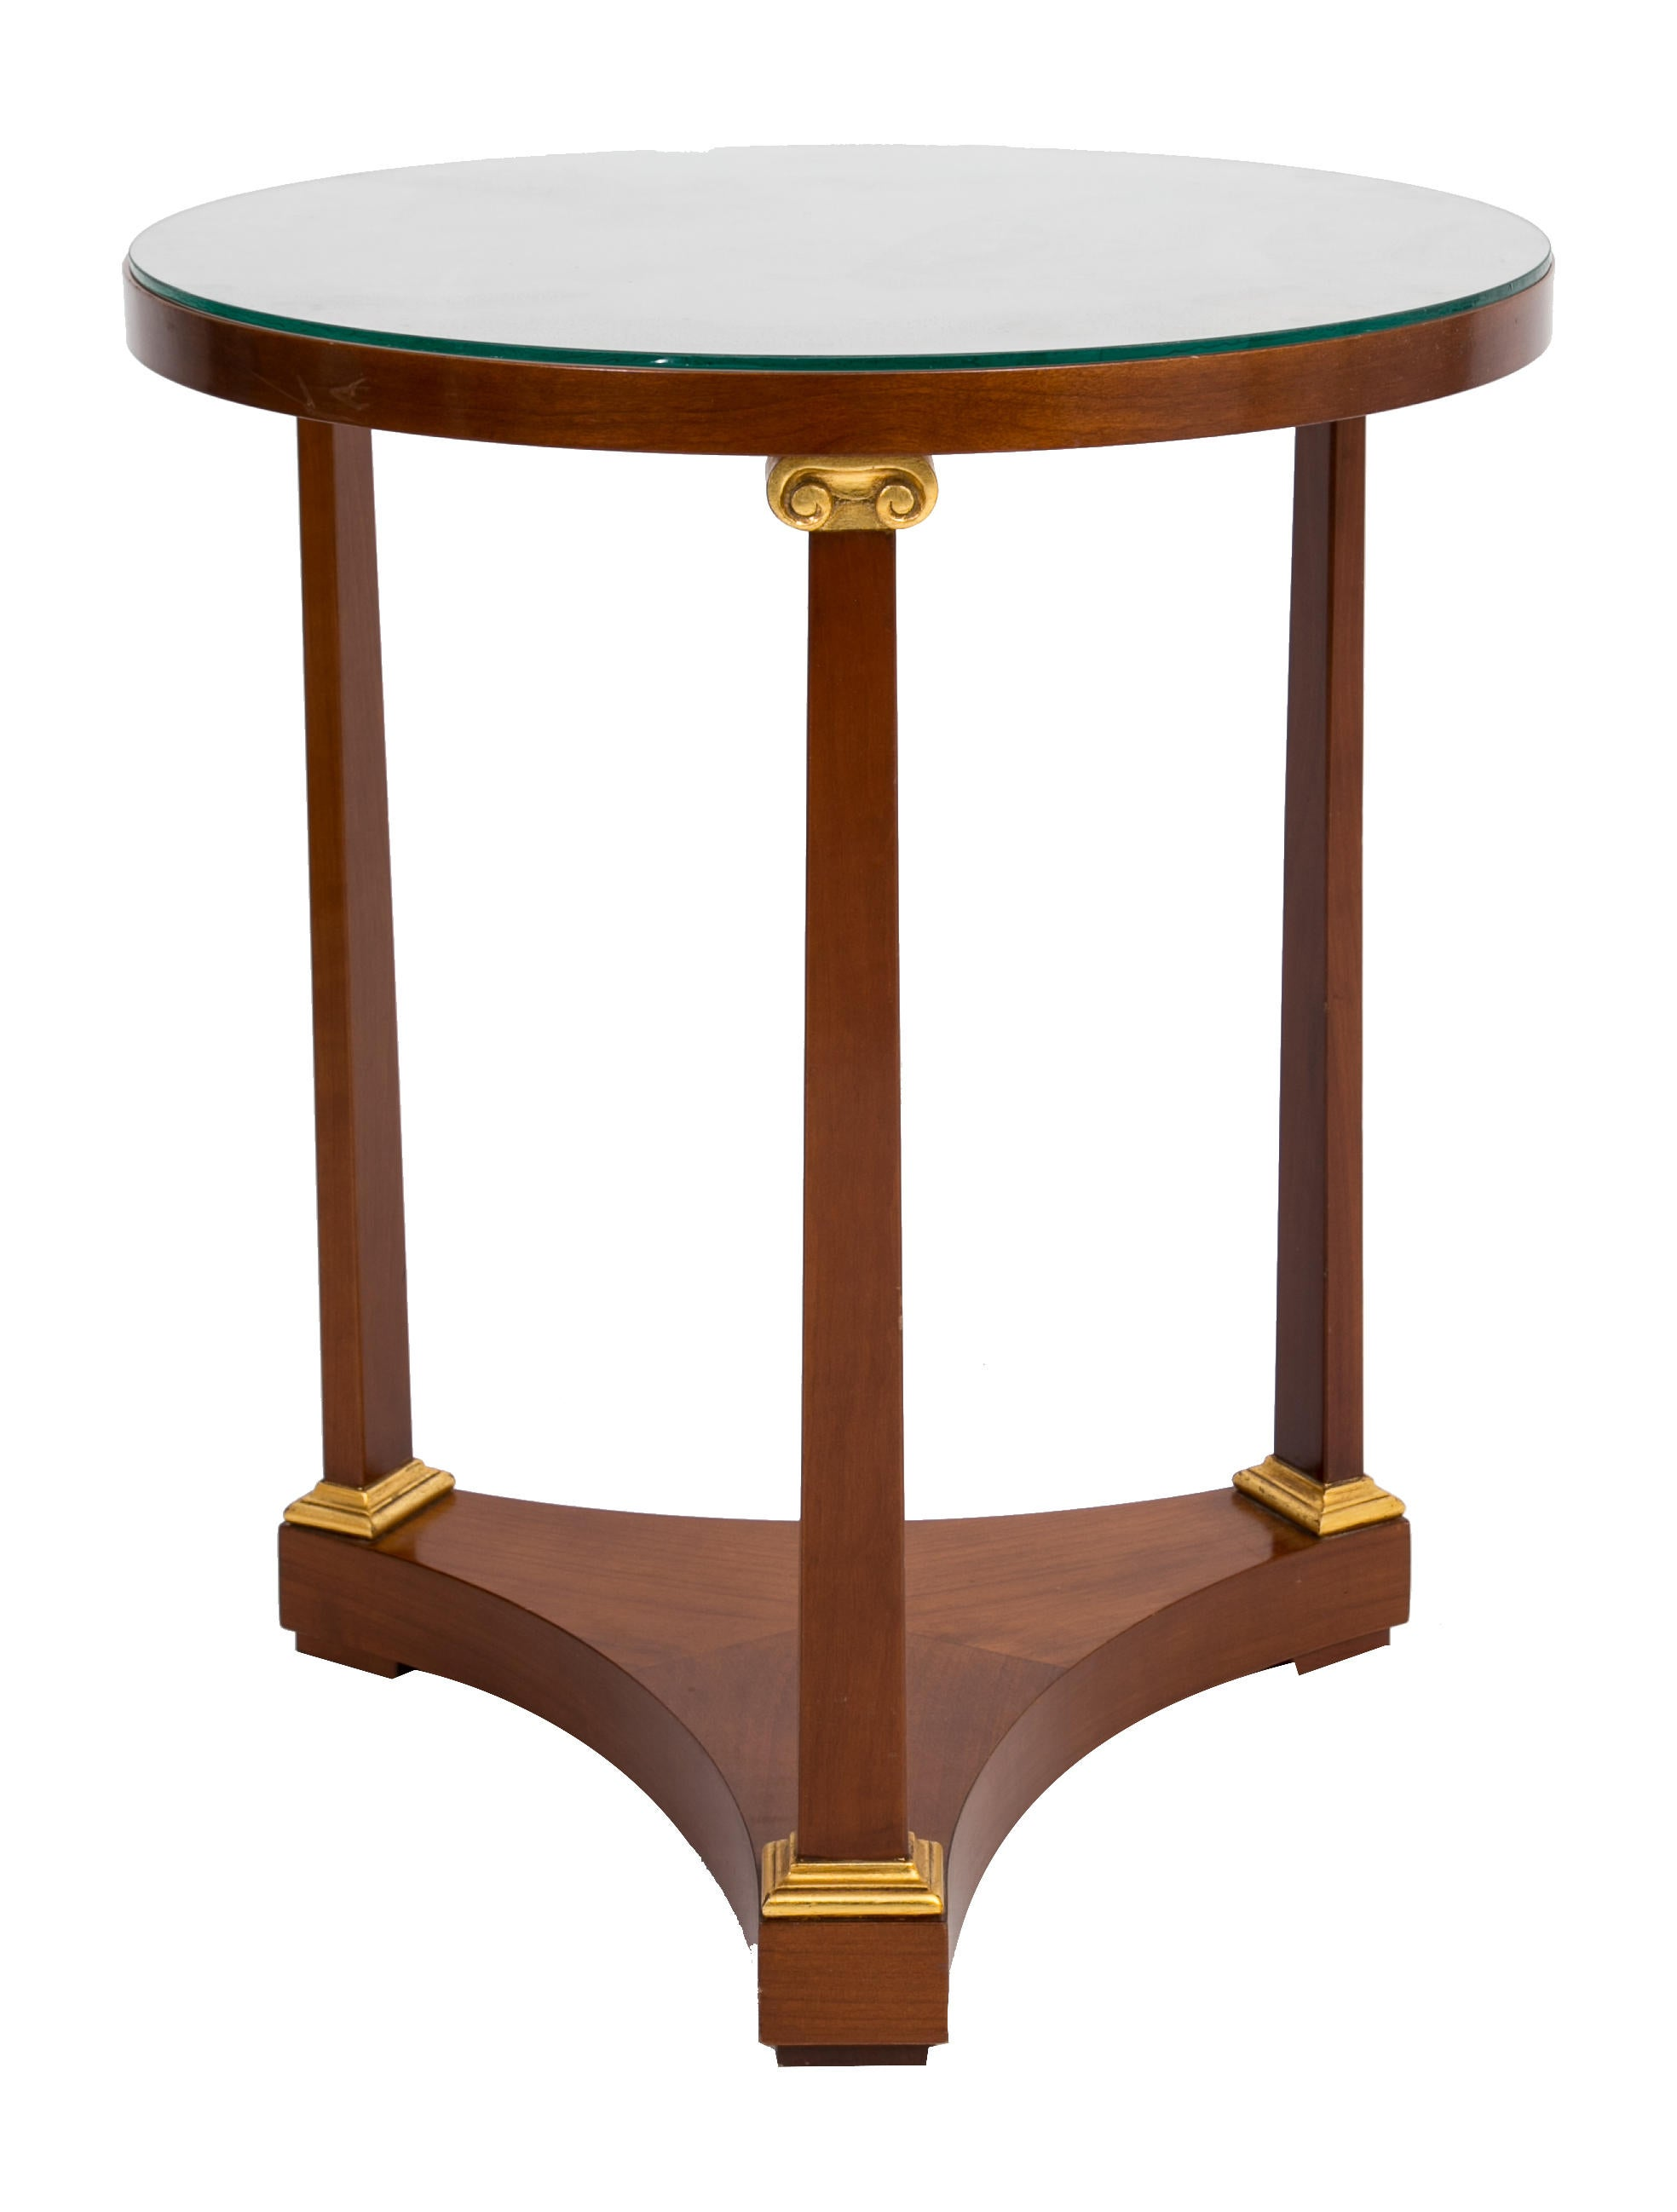 Gianni Versace Medusa Side Tables Furniture GVE20412  : GVE204123enlarged from www.therealreal.com size 1968 x 2596 jpeg 155kB